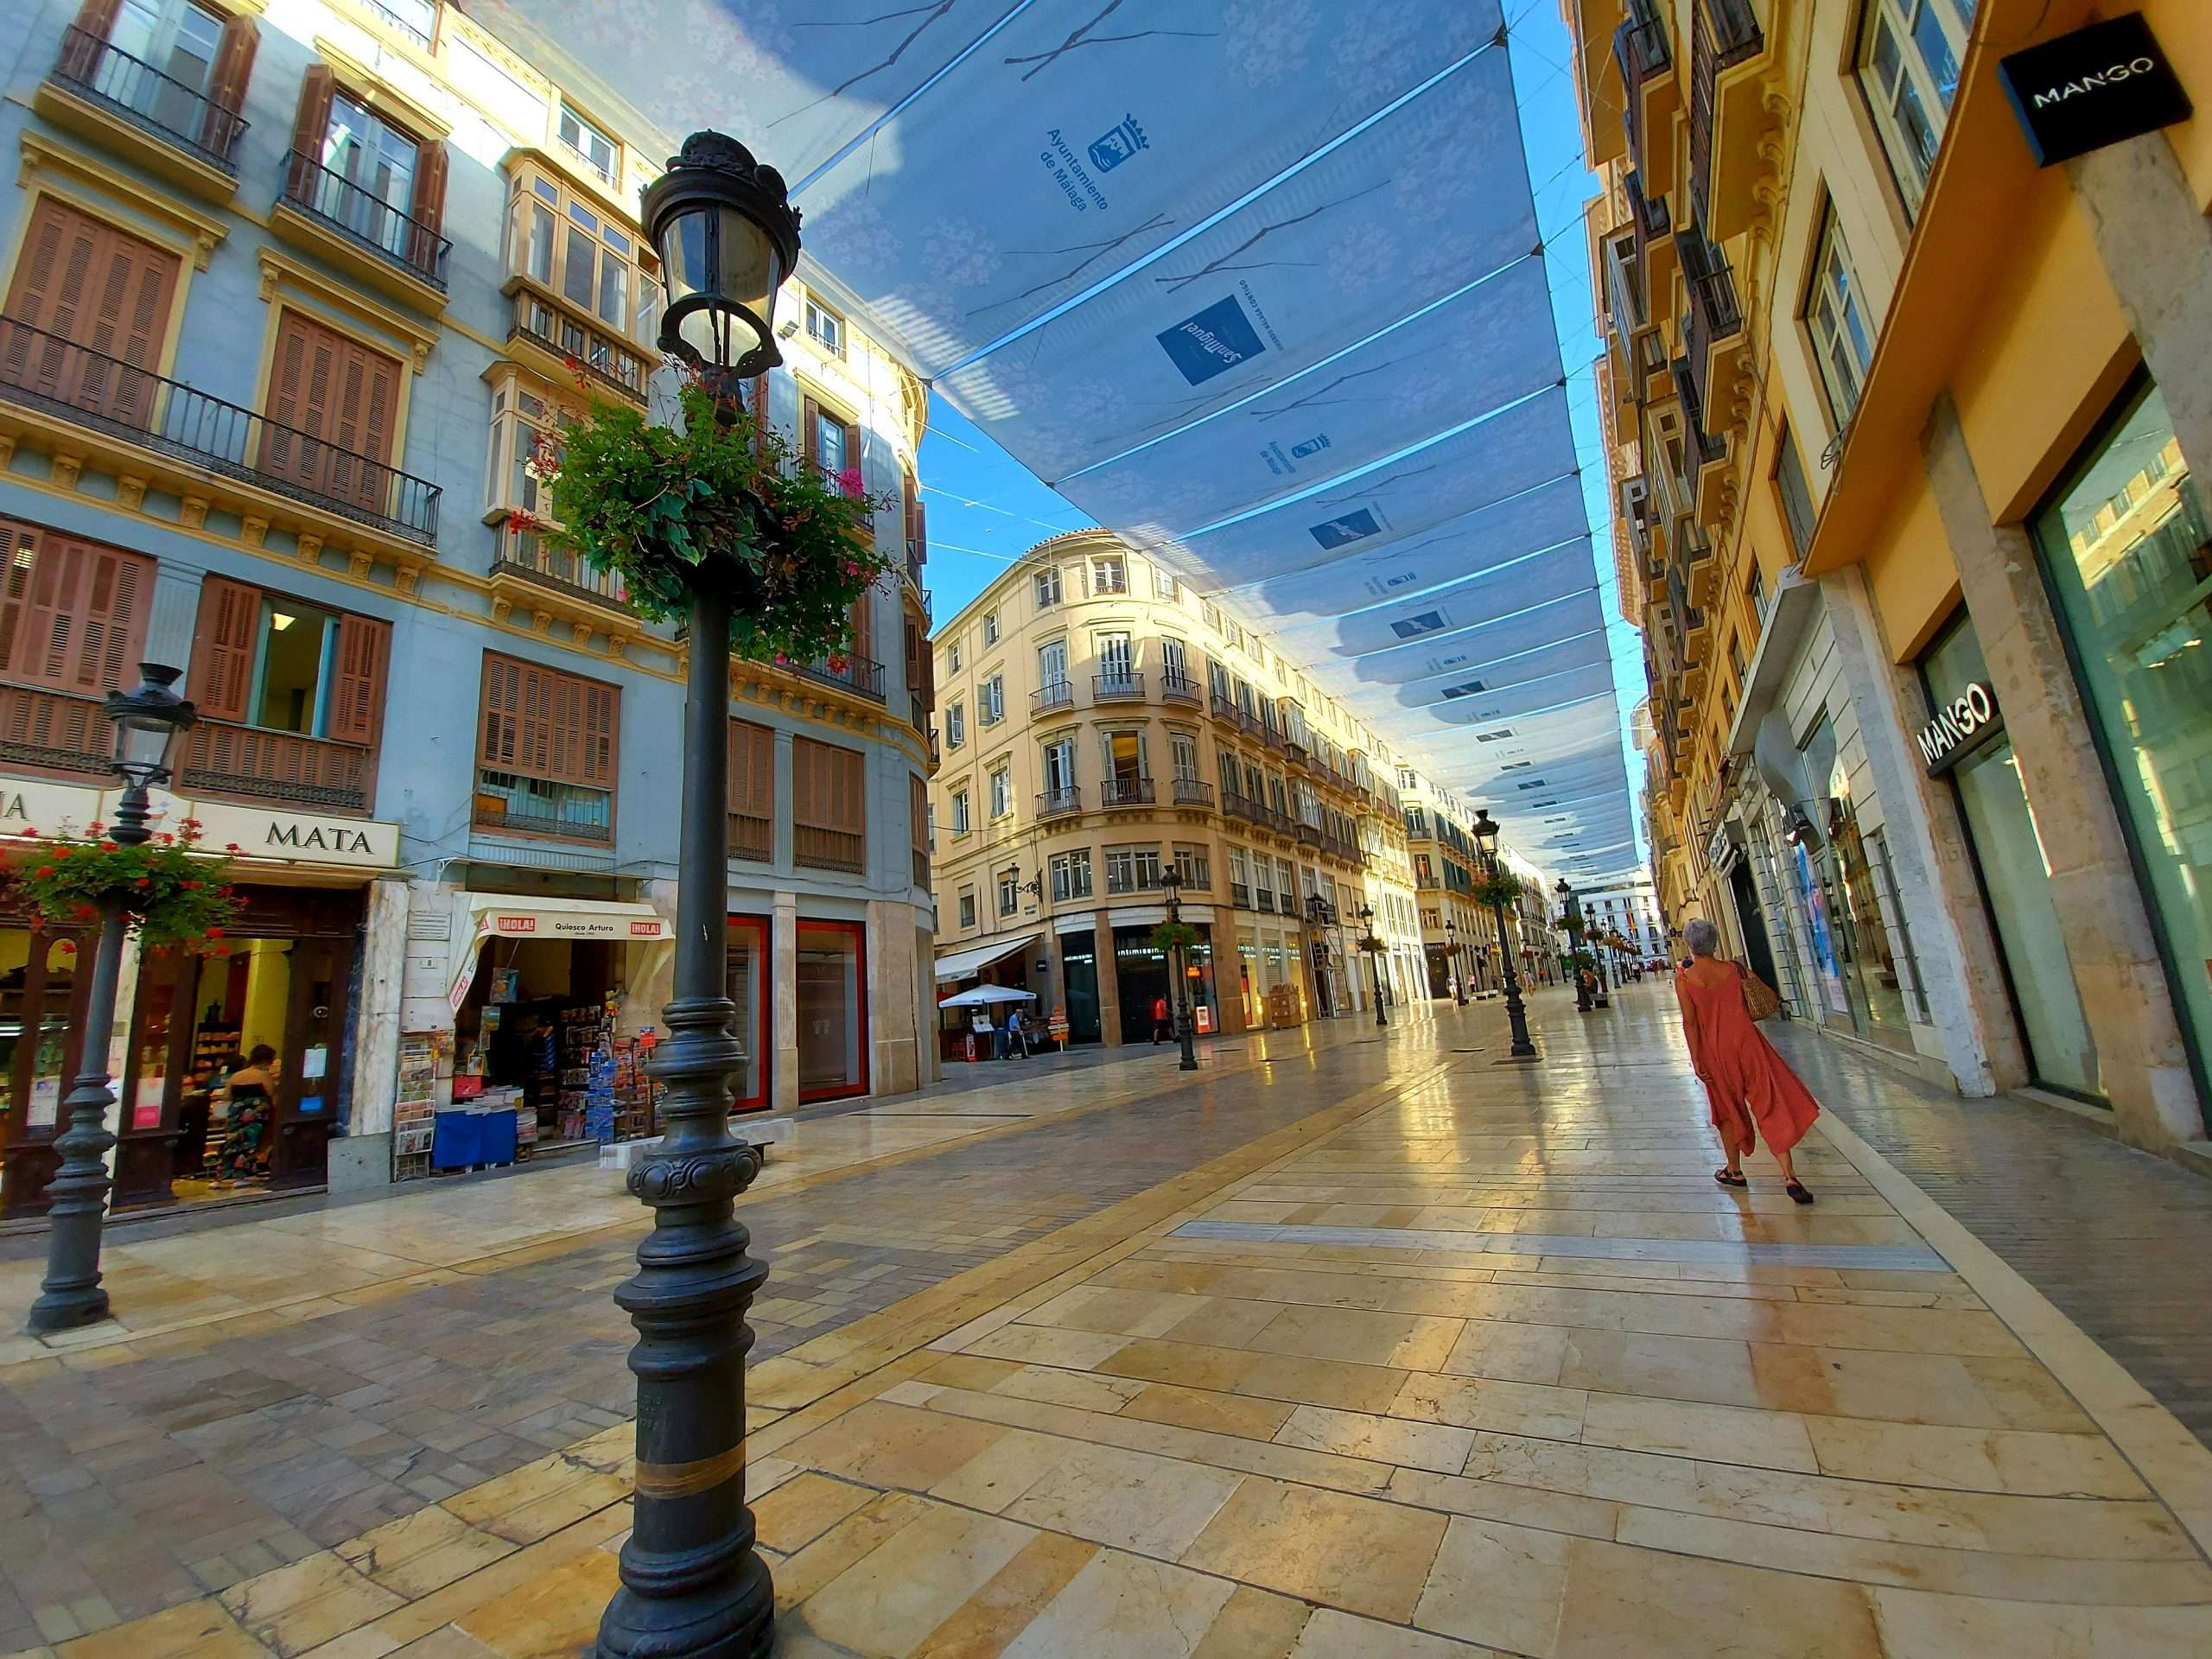 Calle Larios, the perfect place to go for a walk and peope-watch